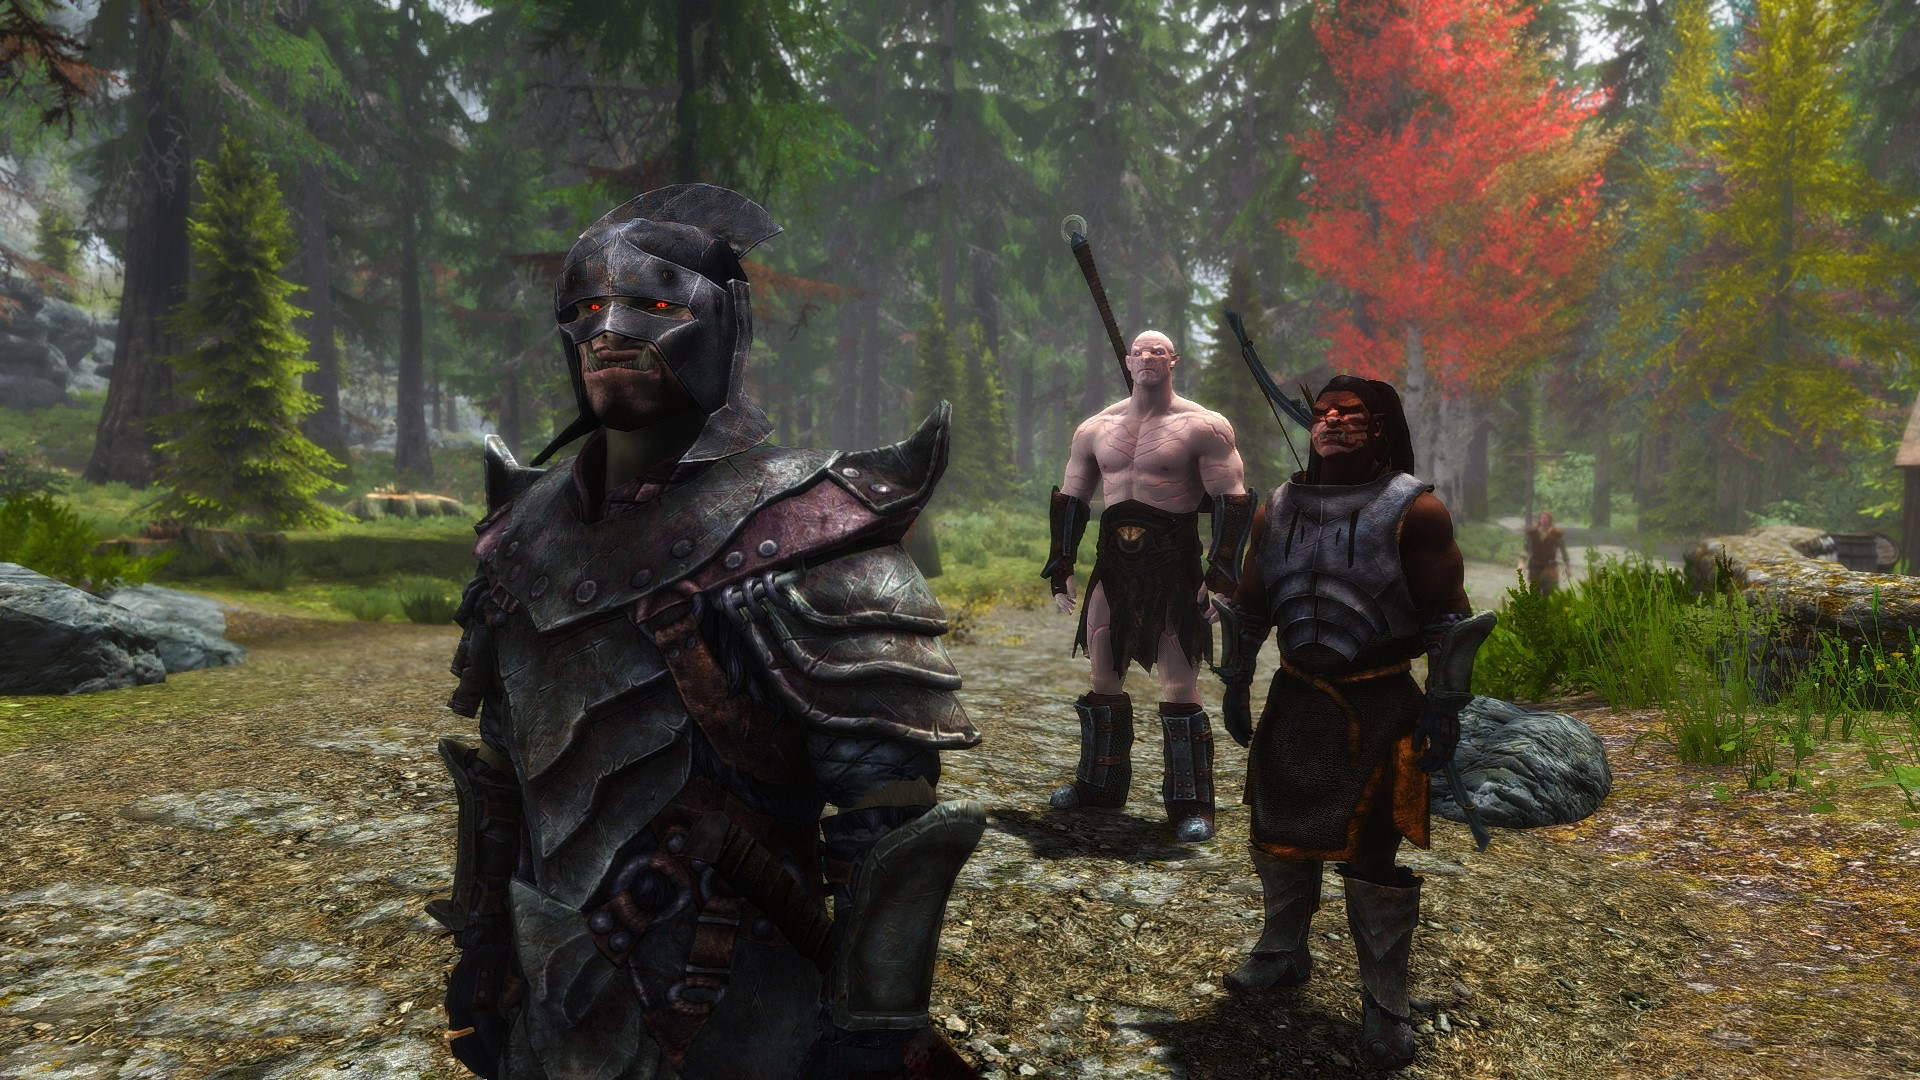 My Orc band